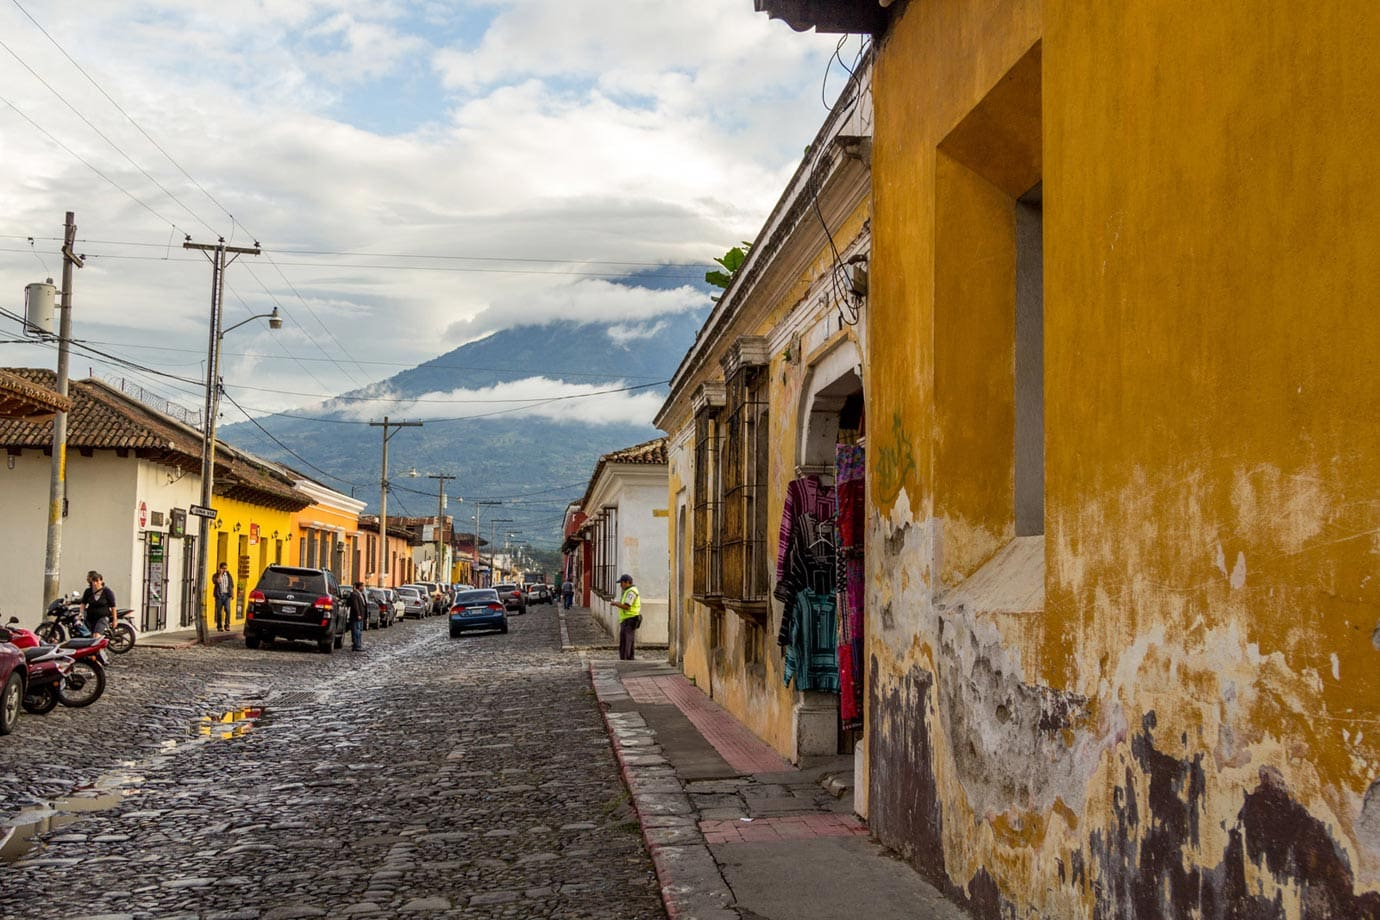 With narrow cobble-stoned streets and brightly coloured buildings, there's no denying the beauty of Antigua